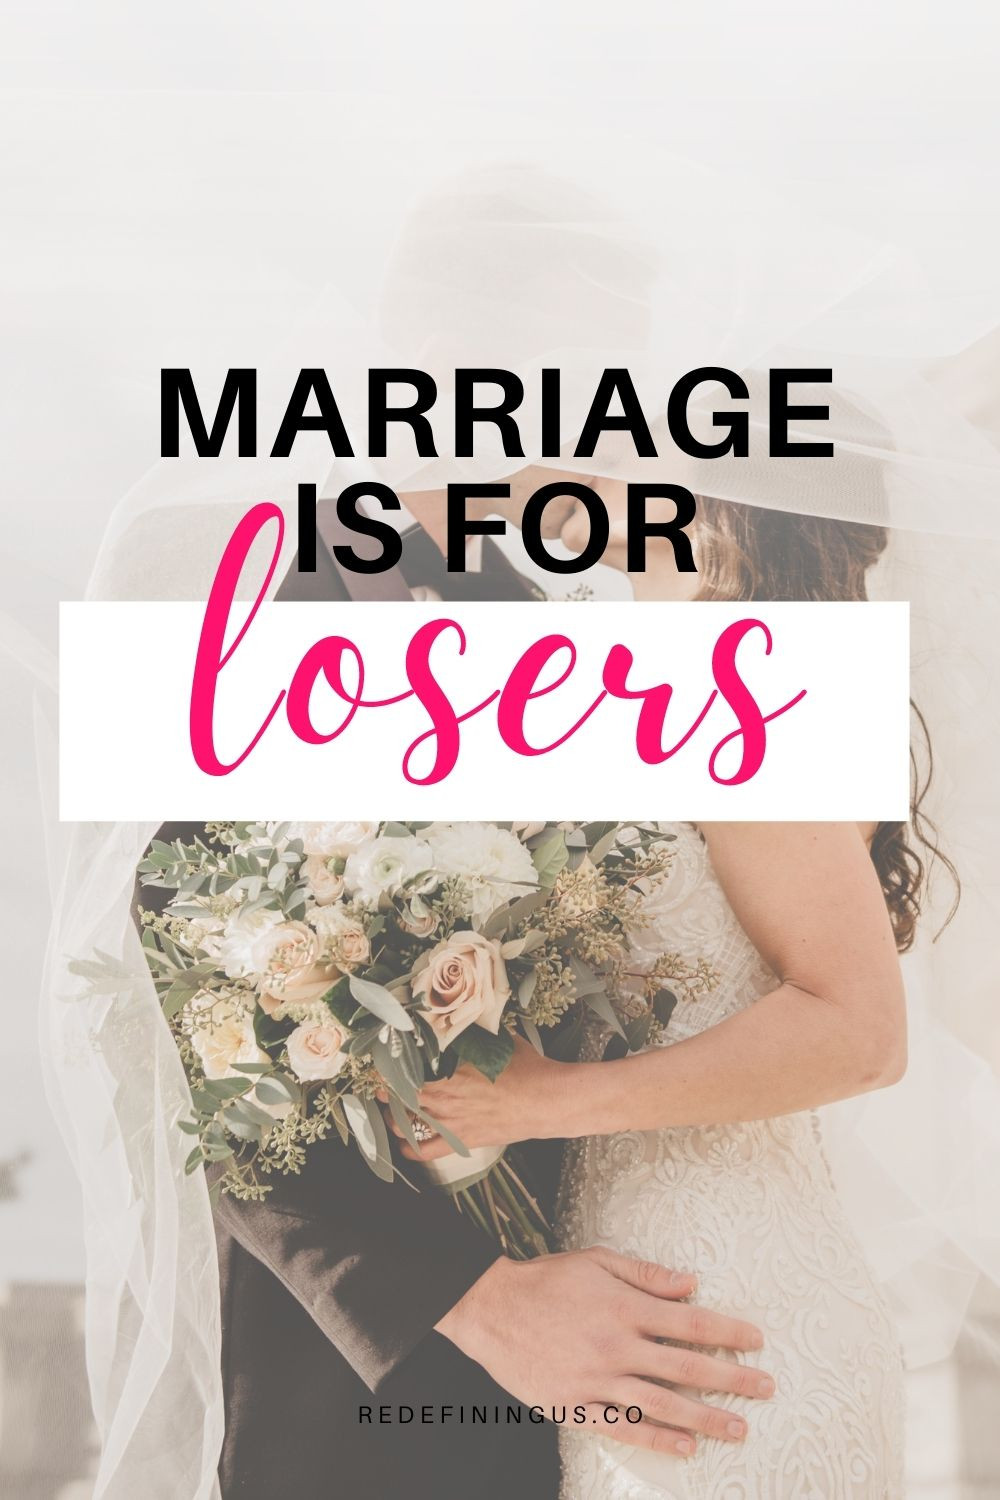 Marriage is For Losers